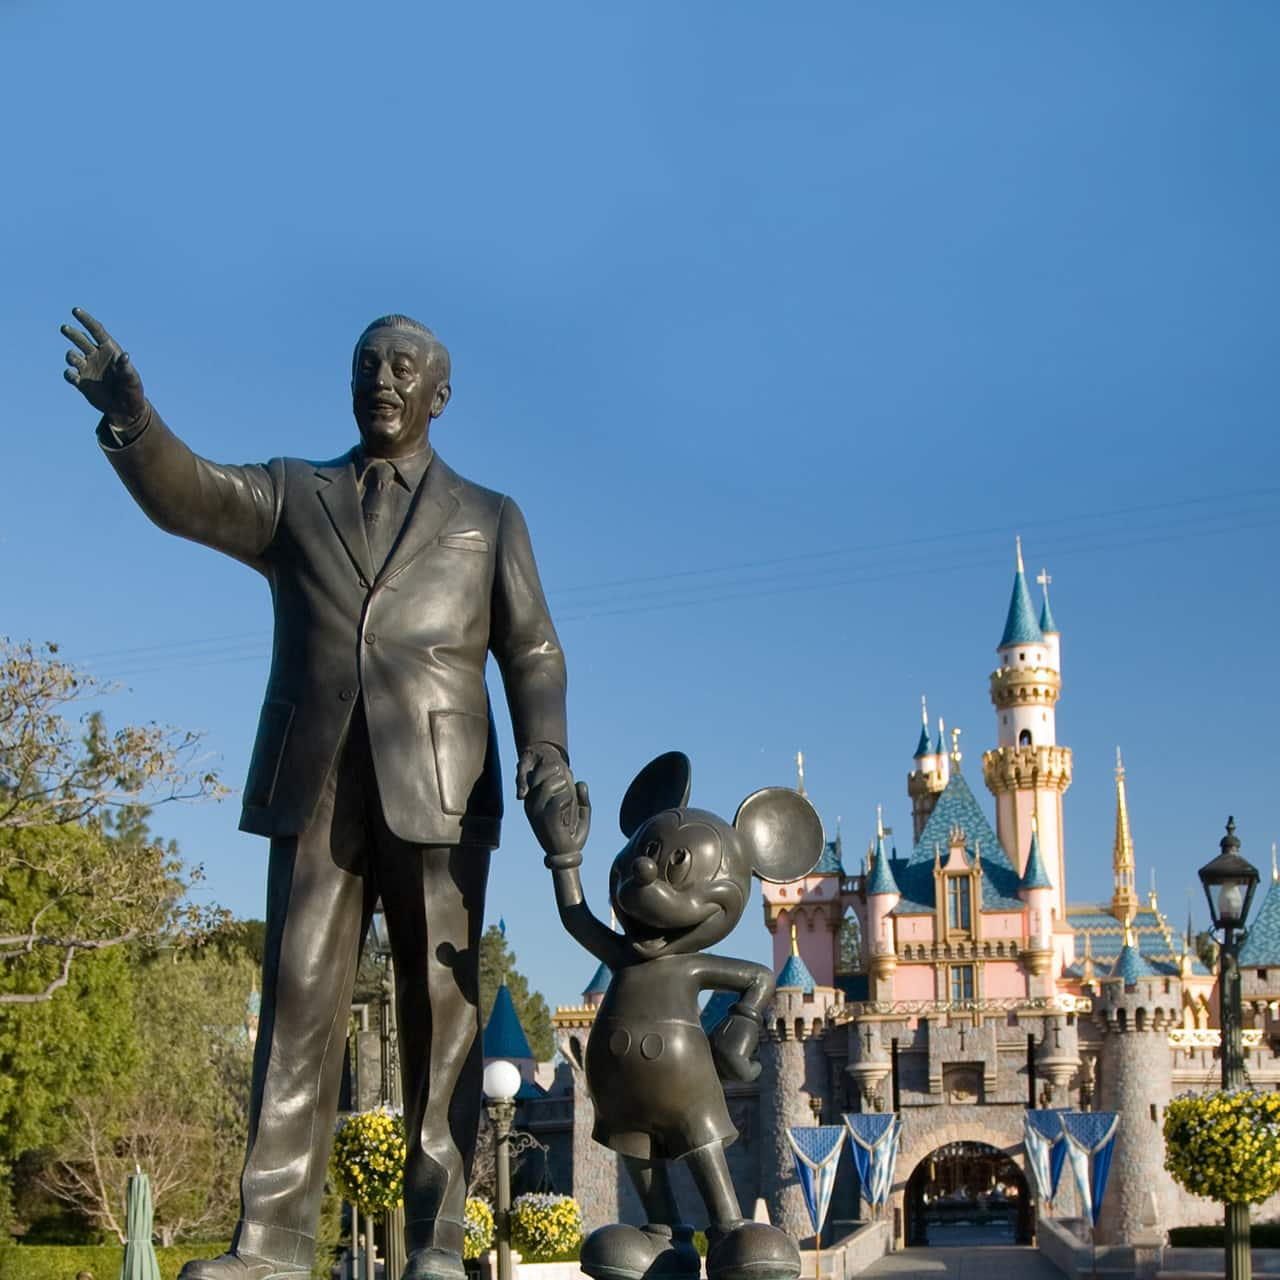 """The Disneyland Park """"Partners"""" statue featuring Walt Disney and Mickey Mouse in a bed of tulips with Sleeping Beauty Castle in the background"""